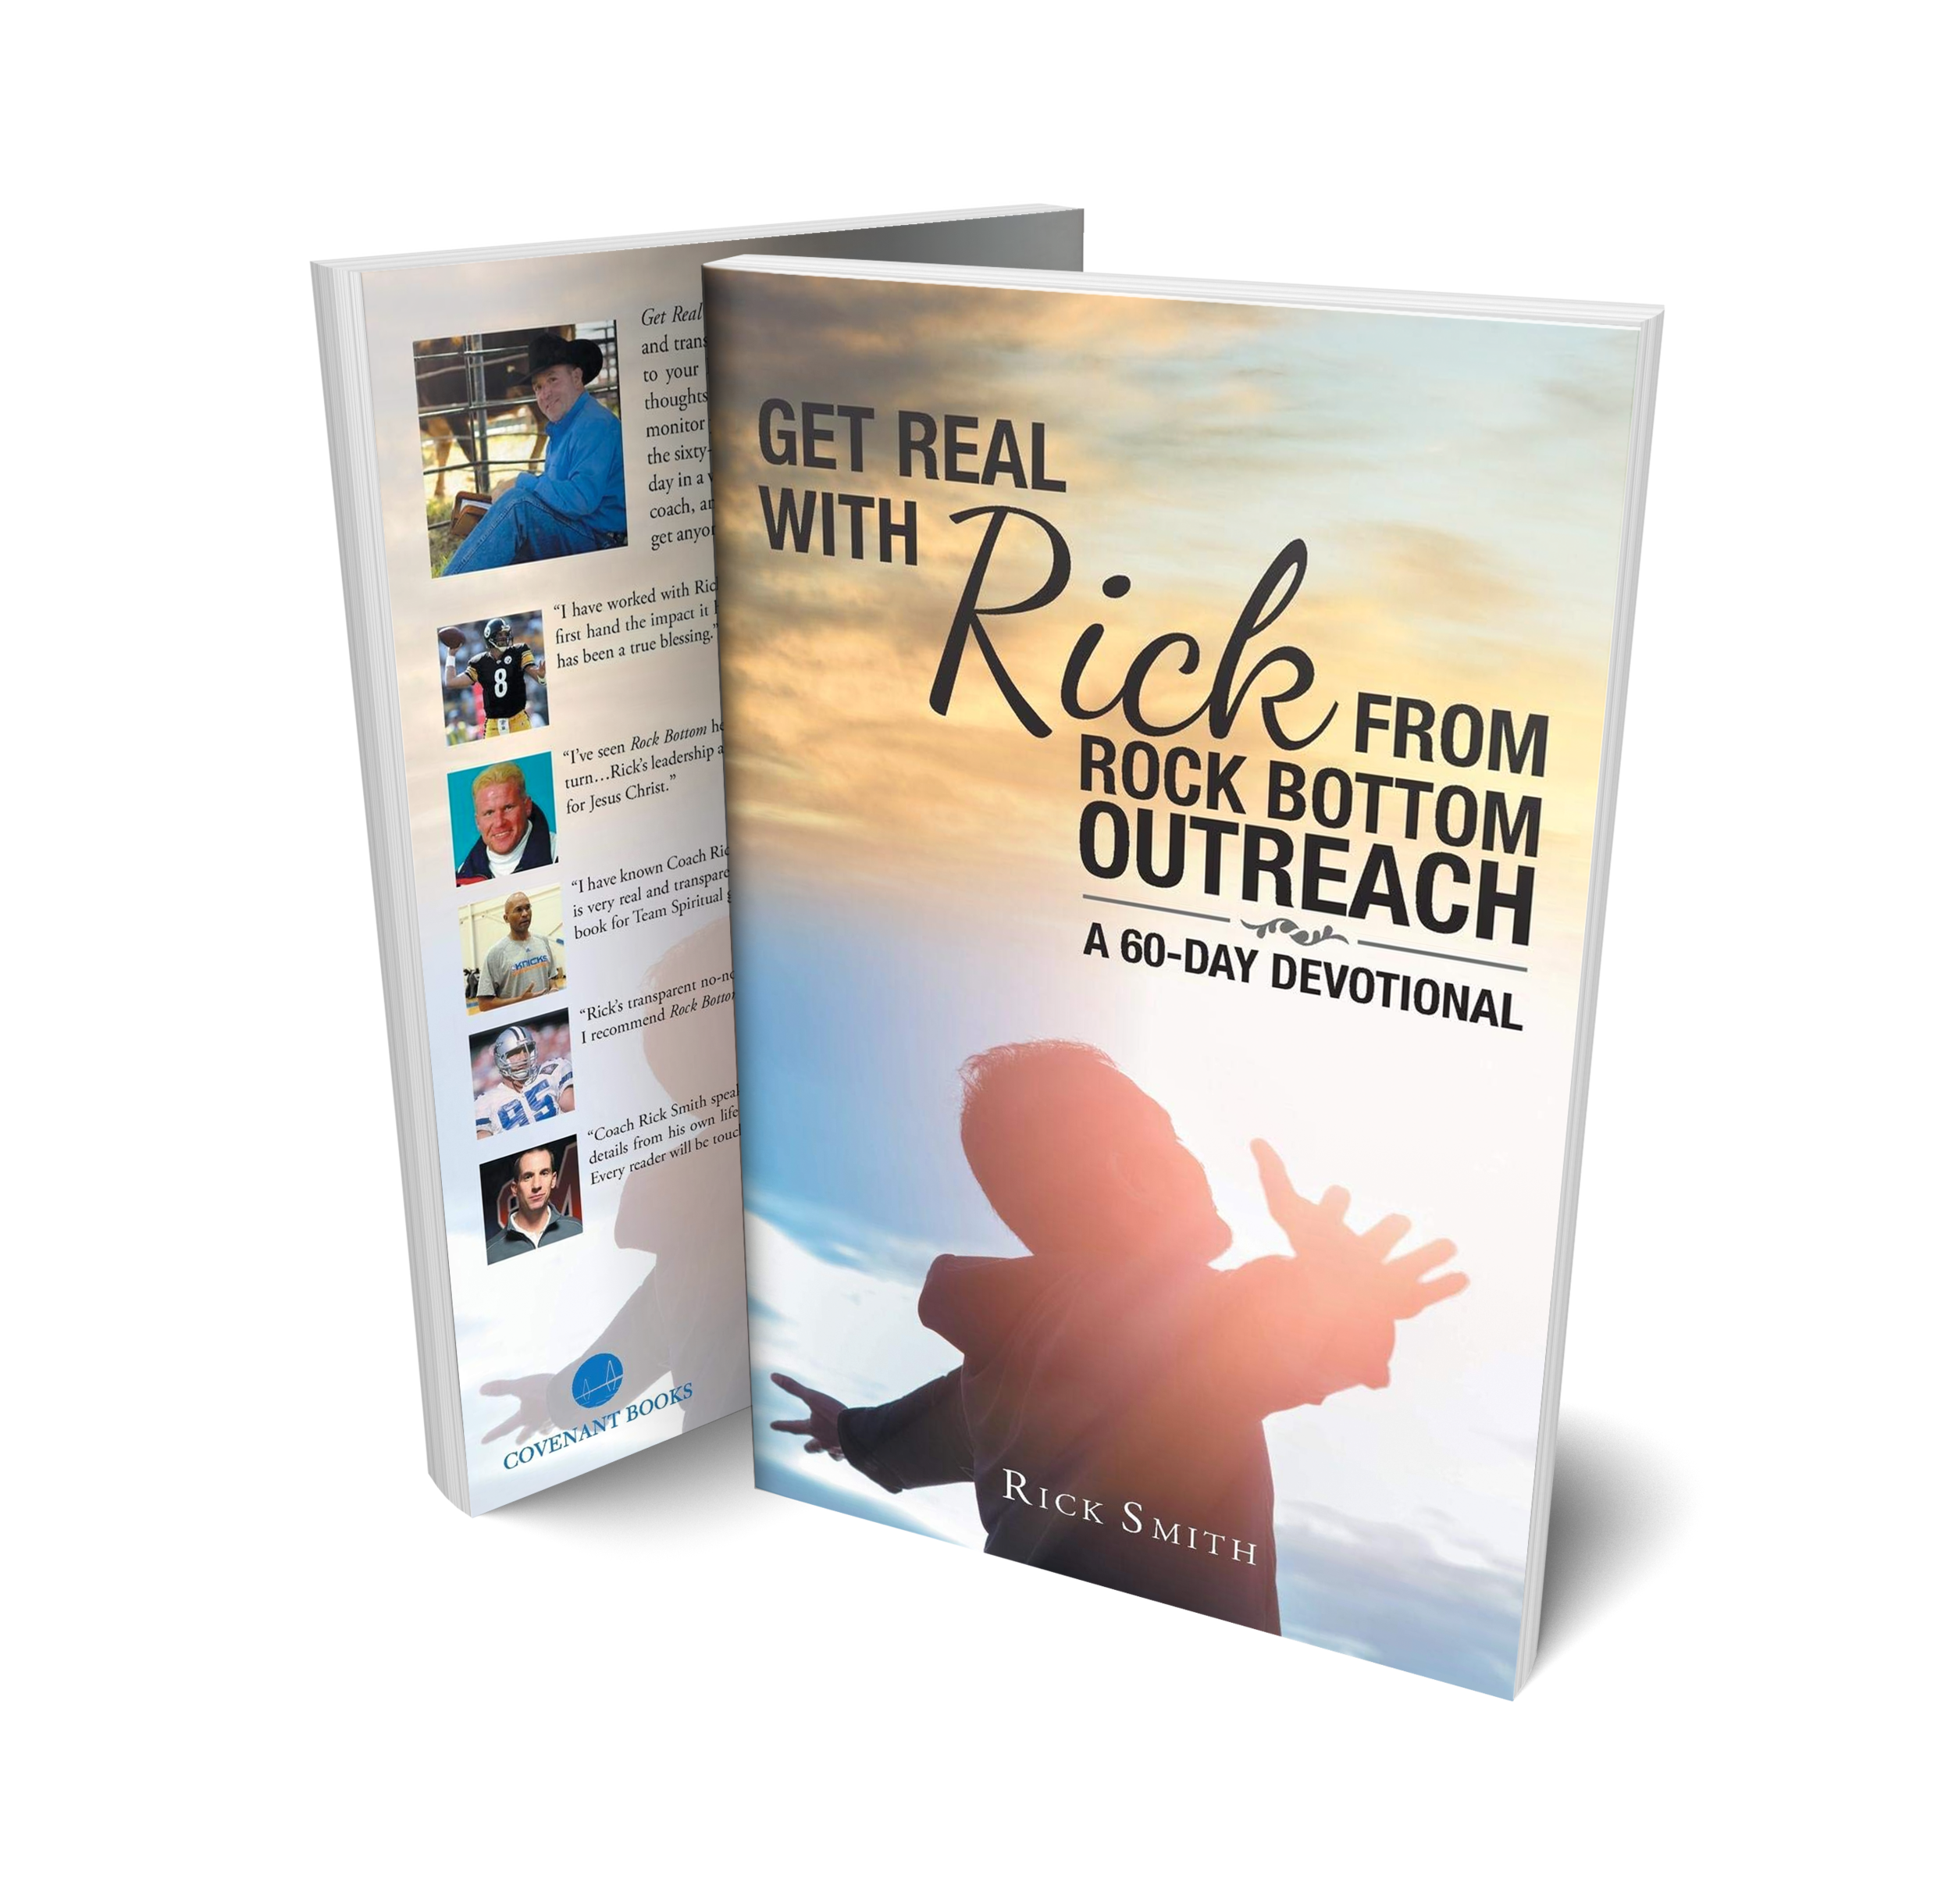 GET REAL WITH RICK FROM ROCK BOTTOM OUTREACH: A 60-DAY DEVOTIONAL